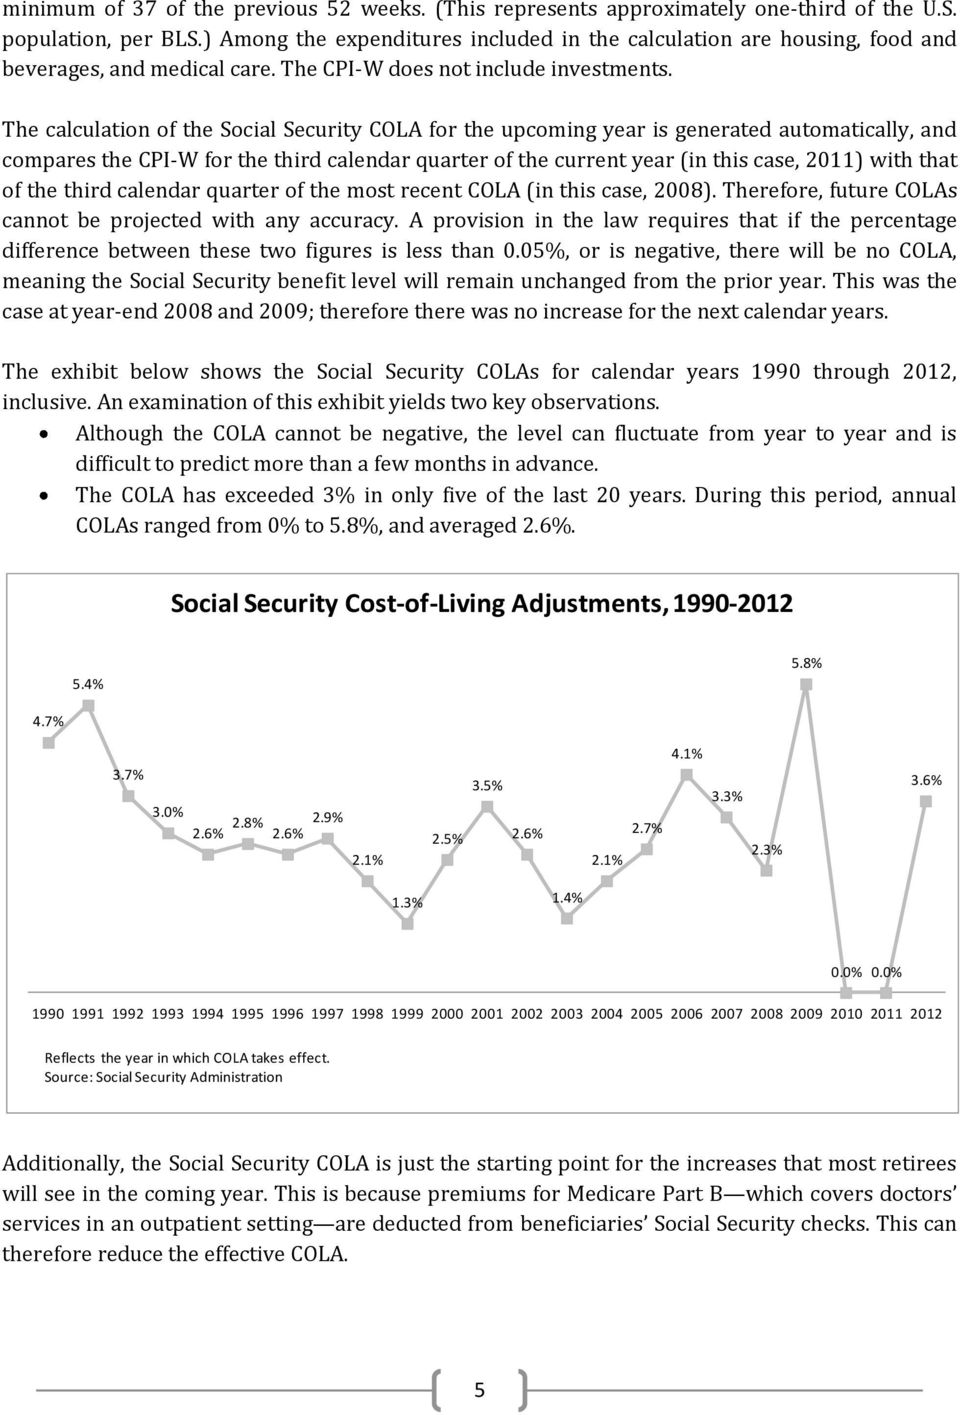 The calculation of the Social Security COLA for the upcoming year is generated automatically, and compares the CPI-W for the third calendar quarter of the current year (in this case, 2011) with that